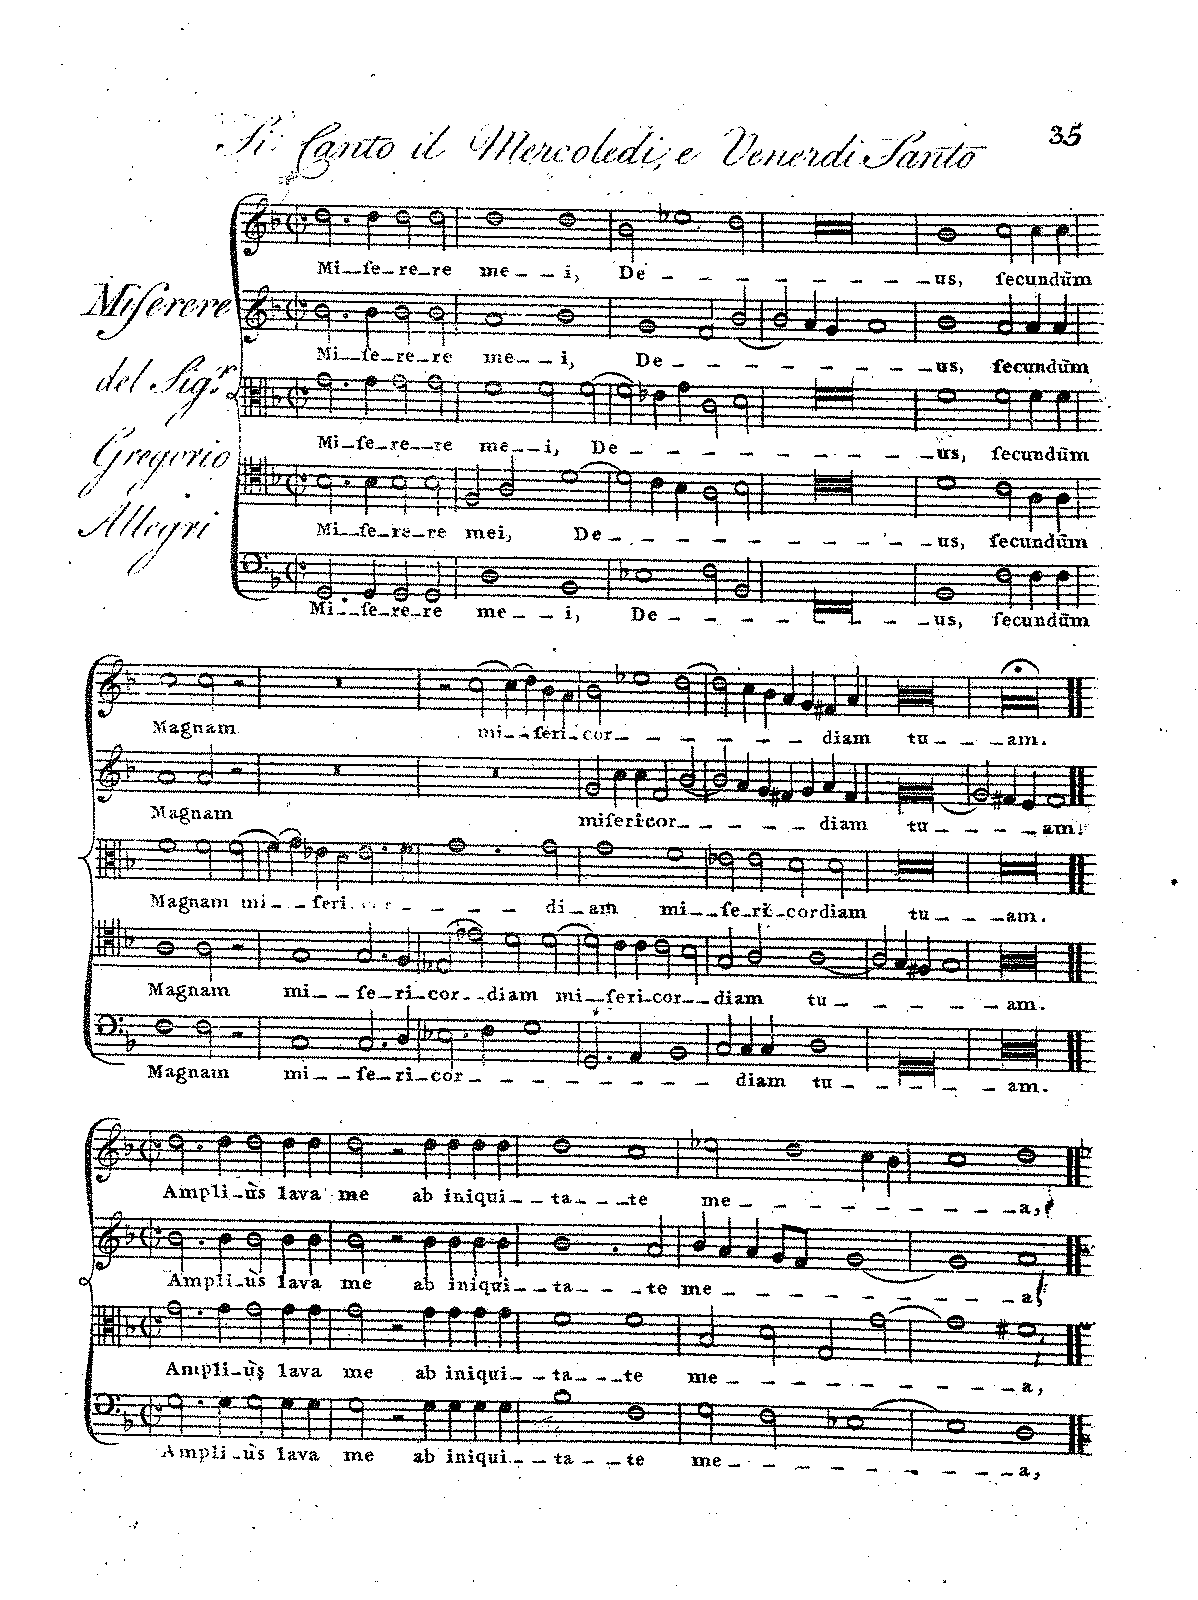 Miserere allegri gregorio imslppetrucci music library free complete score hexwebz Images